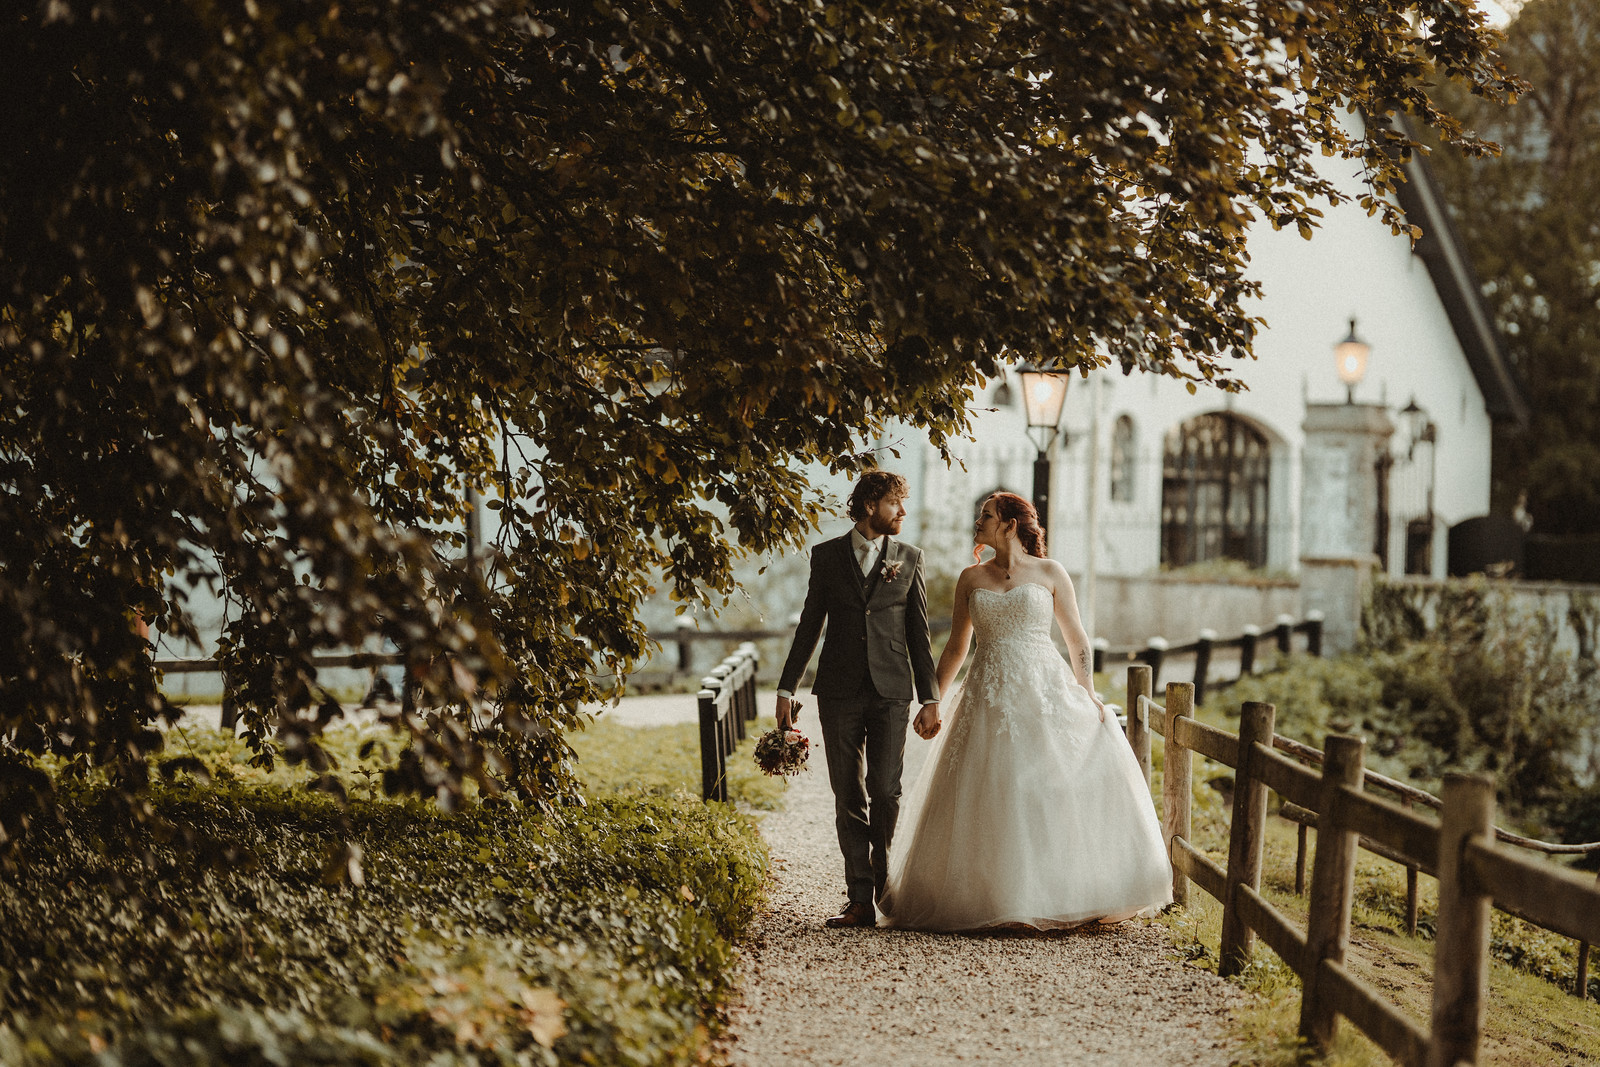 Bride and groom walk through the scenery of their wedding venue - Wedding photographer South Wales